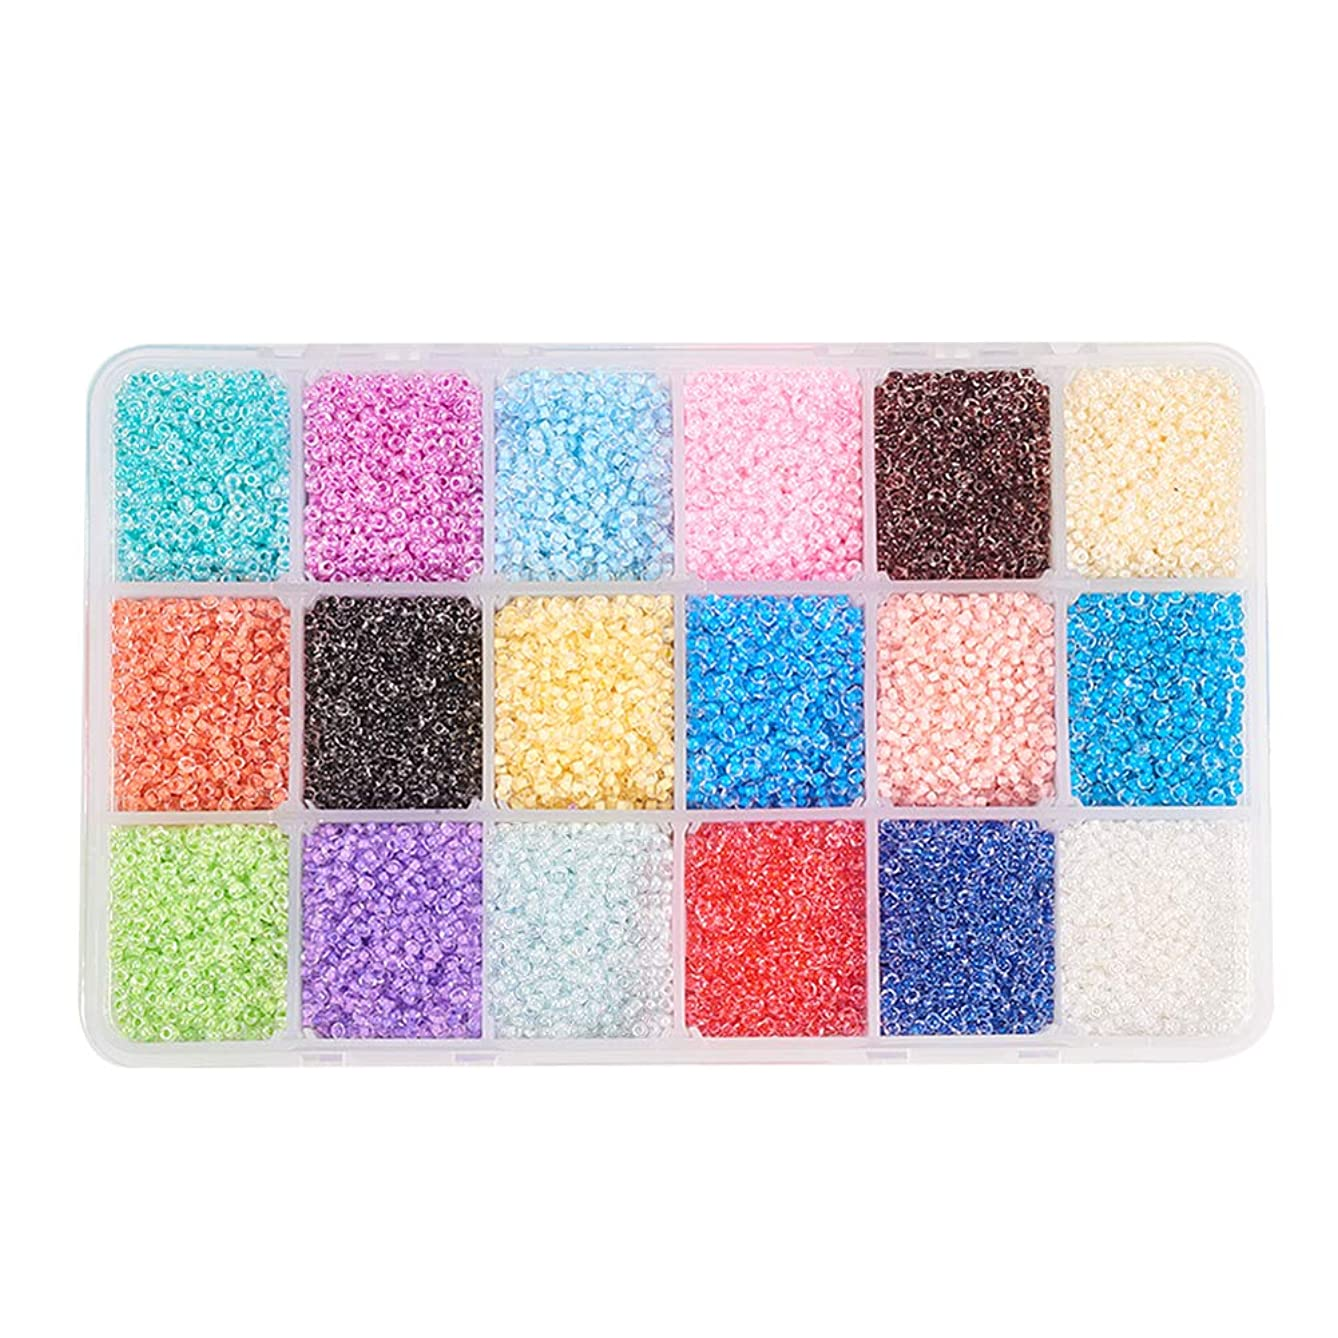 PandaHall Elite About 37800 Pcs 13/0 Multicolor Beading Glass Seed Beads 18 Colors Transparent Round Pony Bead Mini Spacer Beads Diameter 2.3mm with Container Box for Jewelry Making